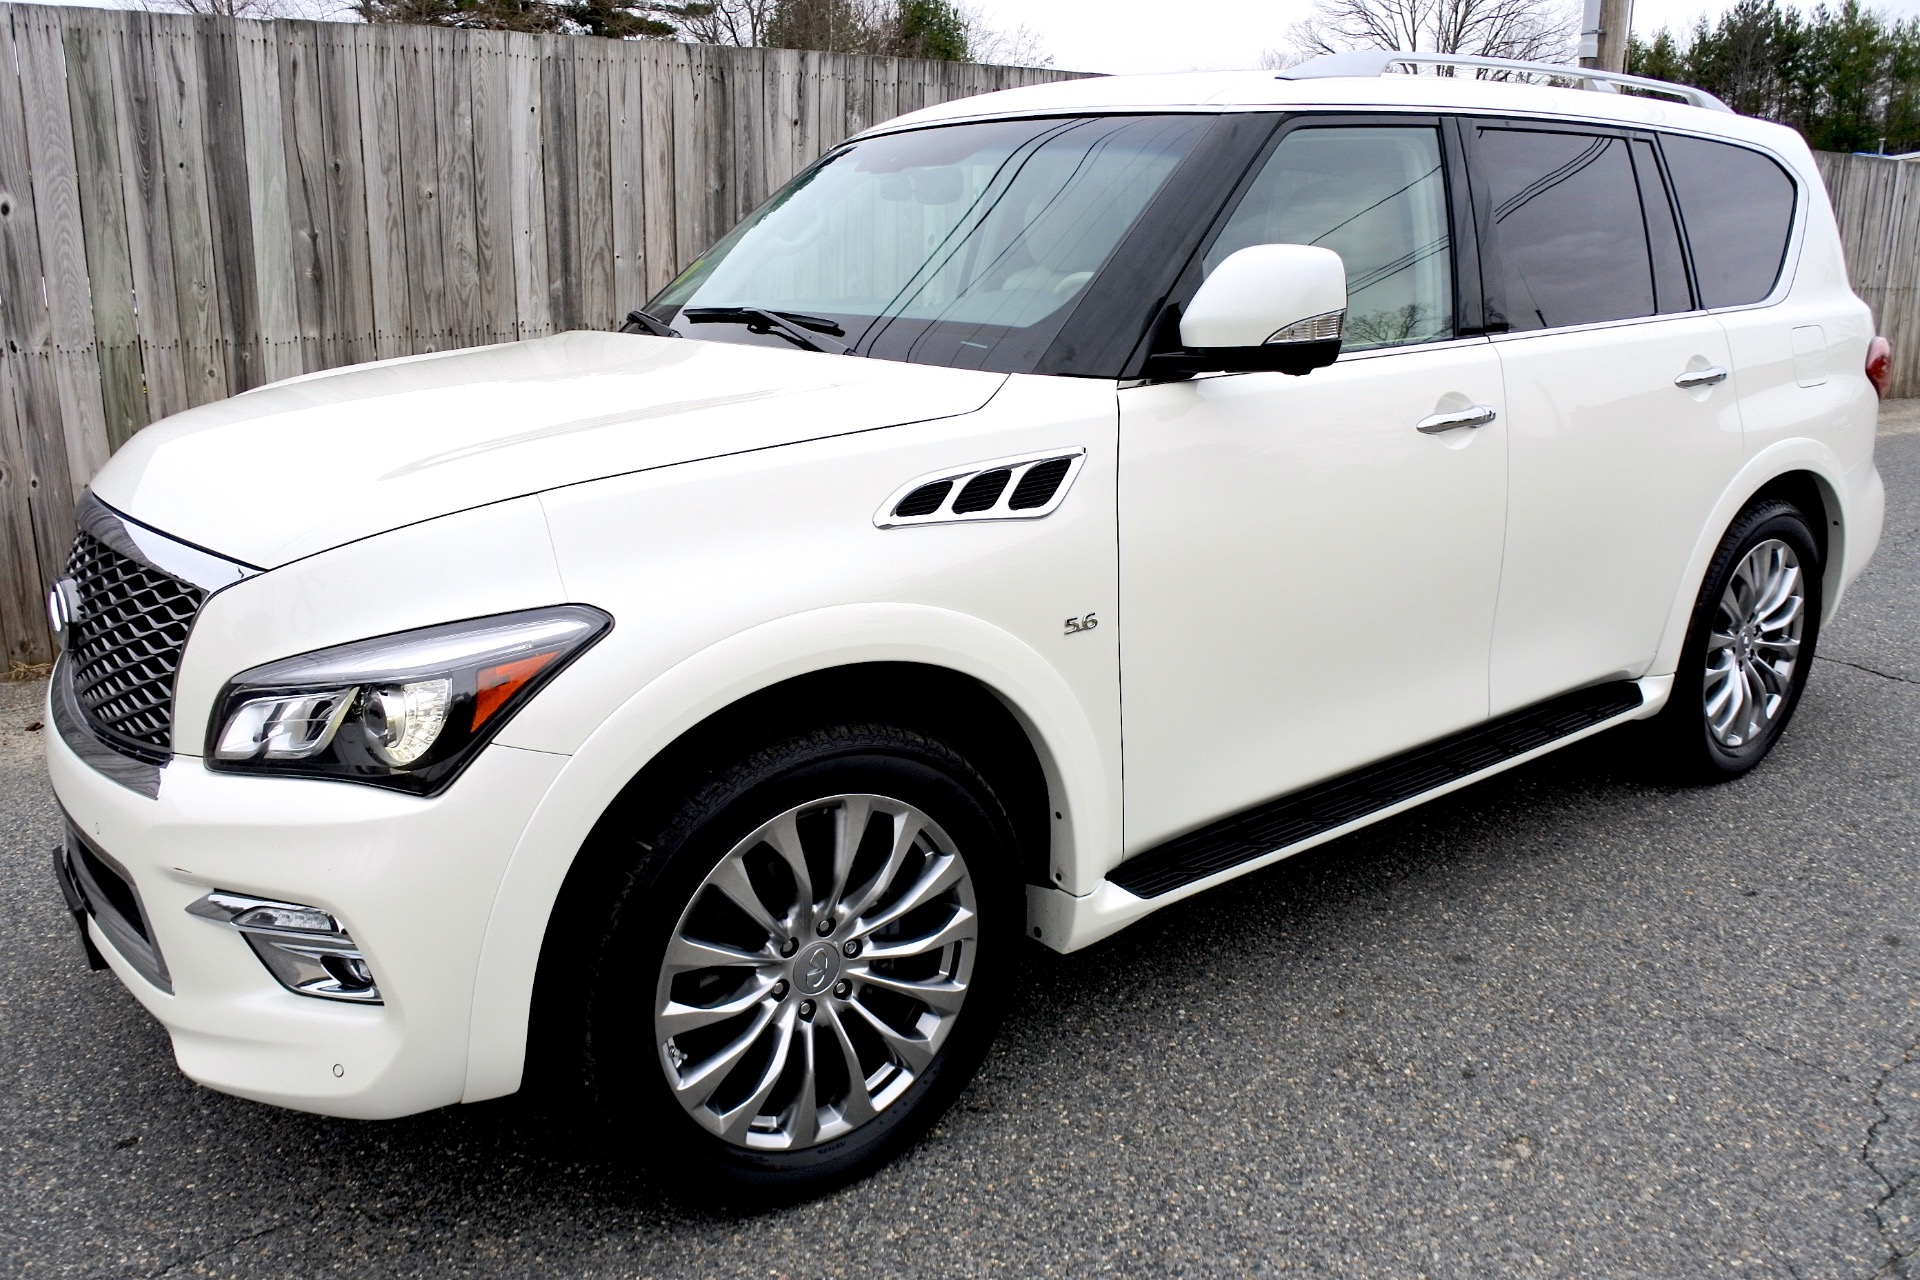 Used 2015 Infiniti Qx80 Limited 4WD Used 2015 Infiniti Qx80 Limited 4WD for sale  at Metro West Motorcars LLC in Shrewsbury MA 1